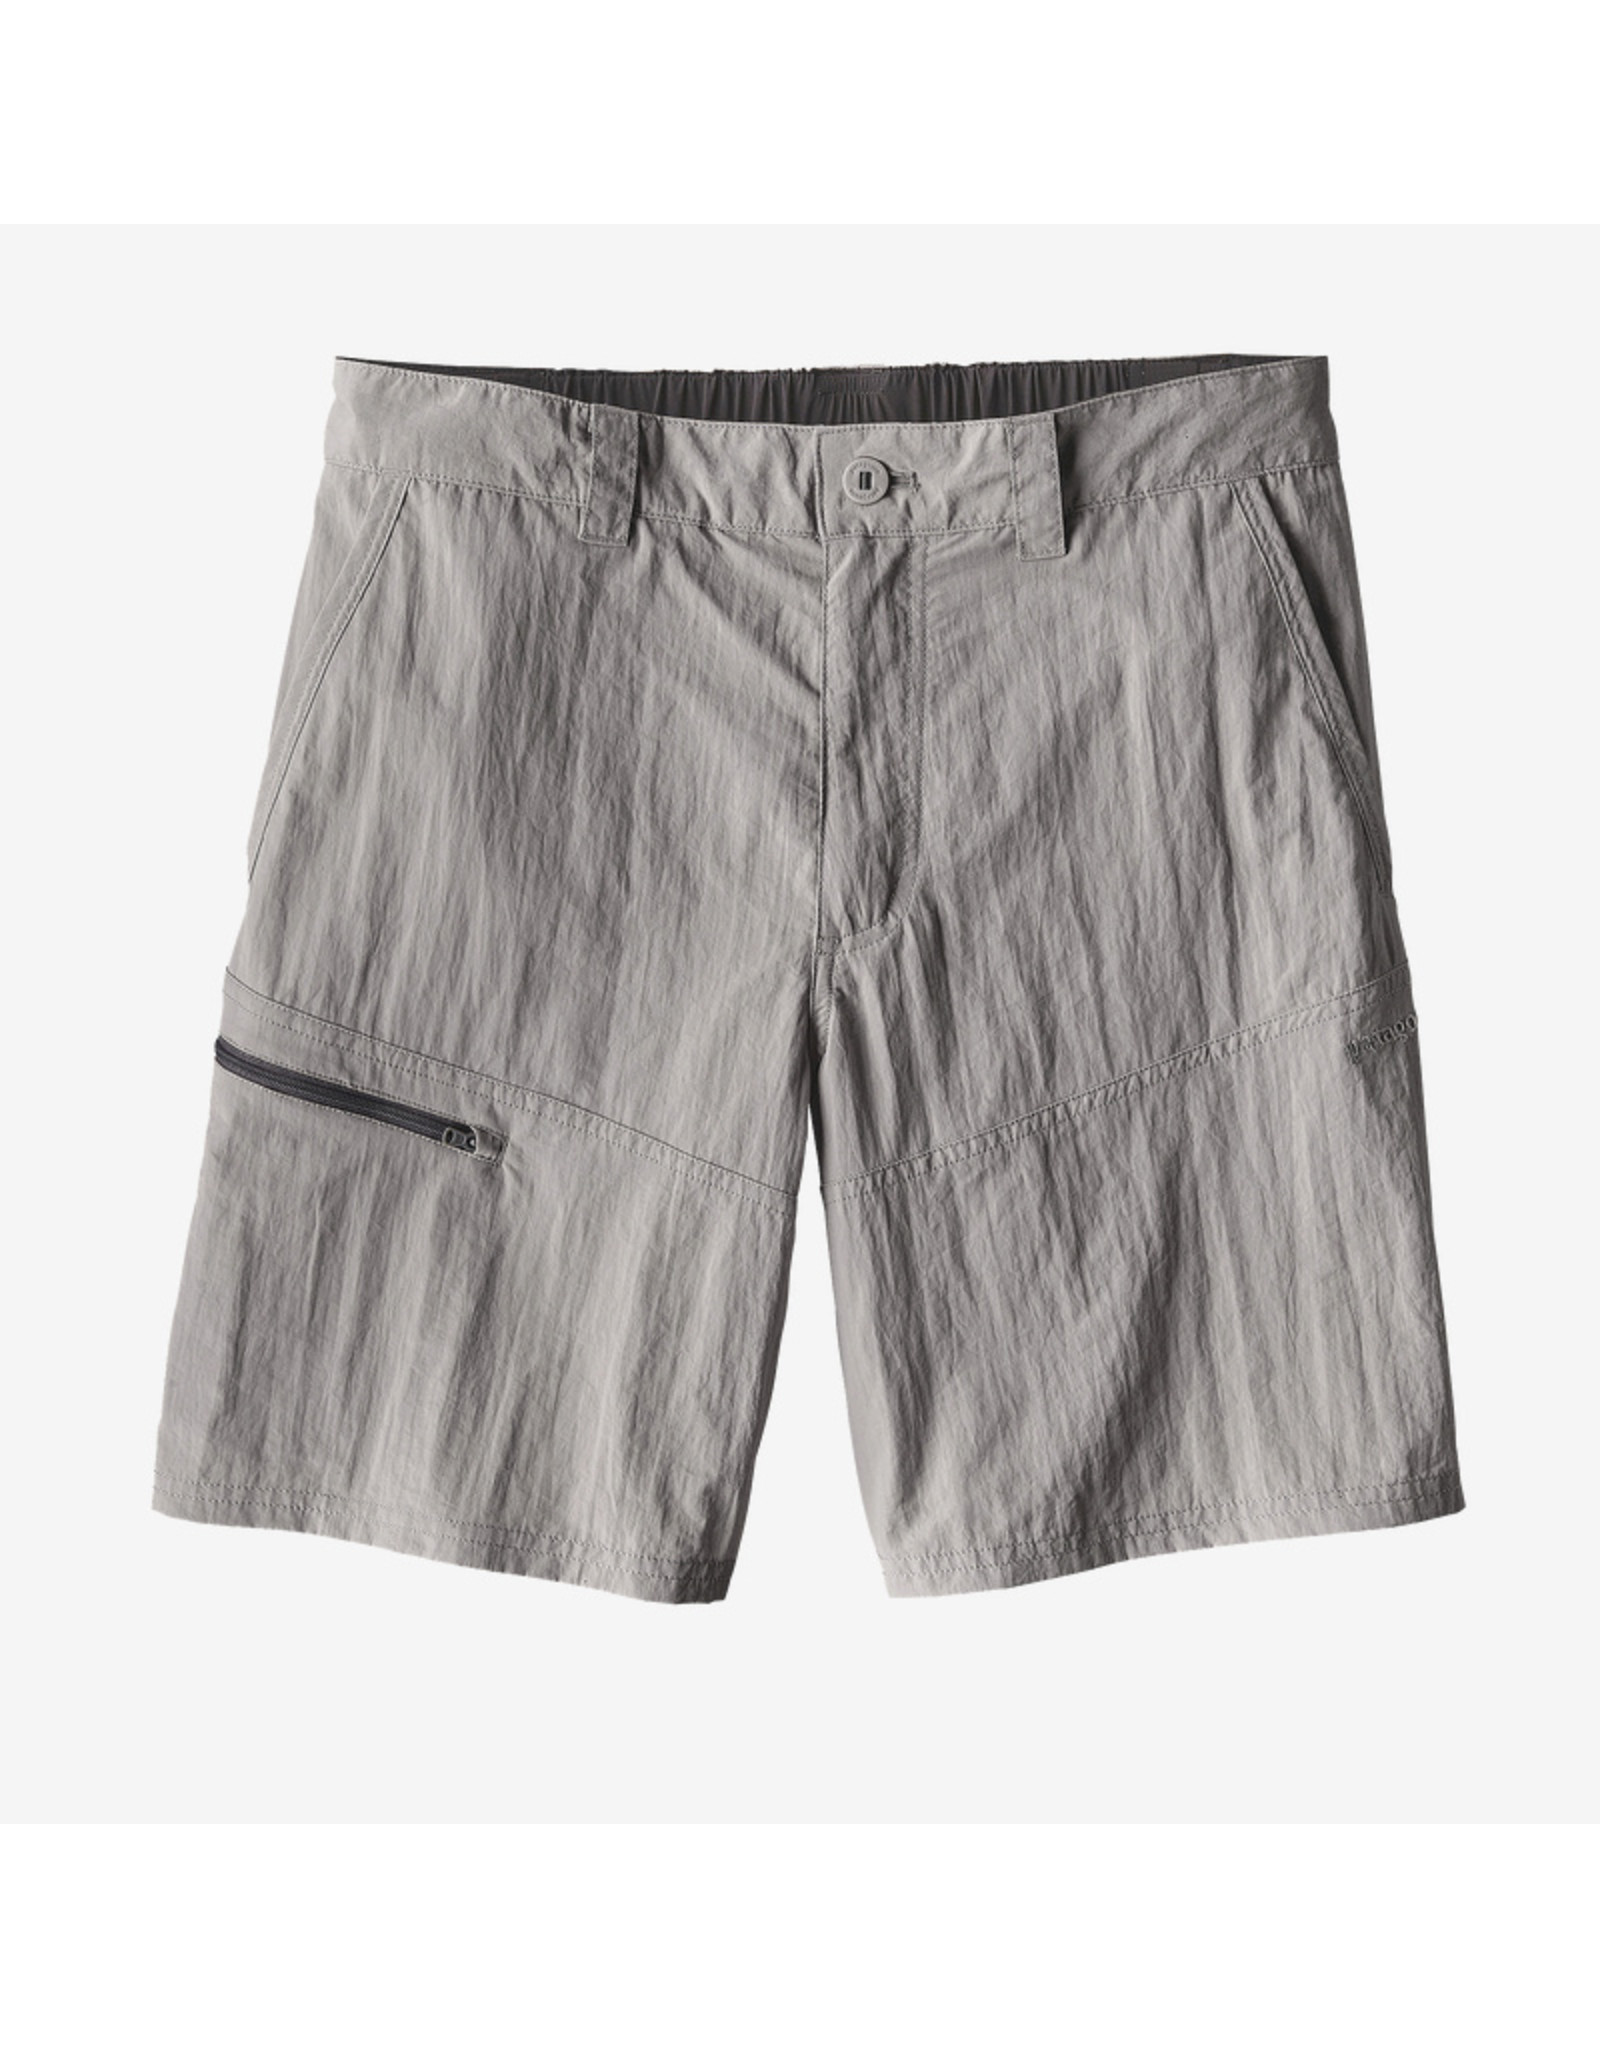 Patagonia Patagonia - Men's Sandy Cay Shorts- 8""